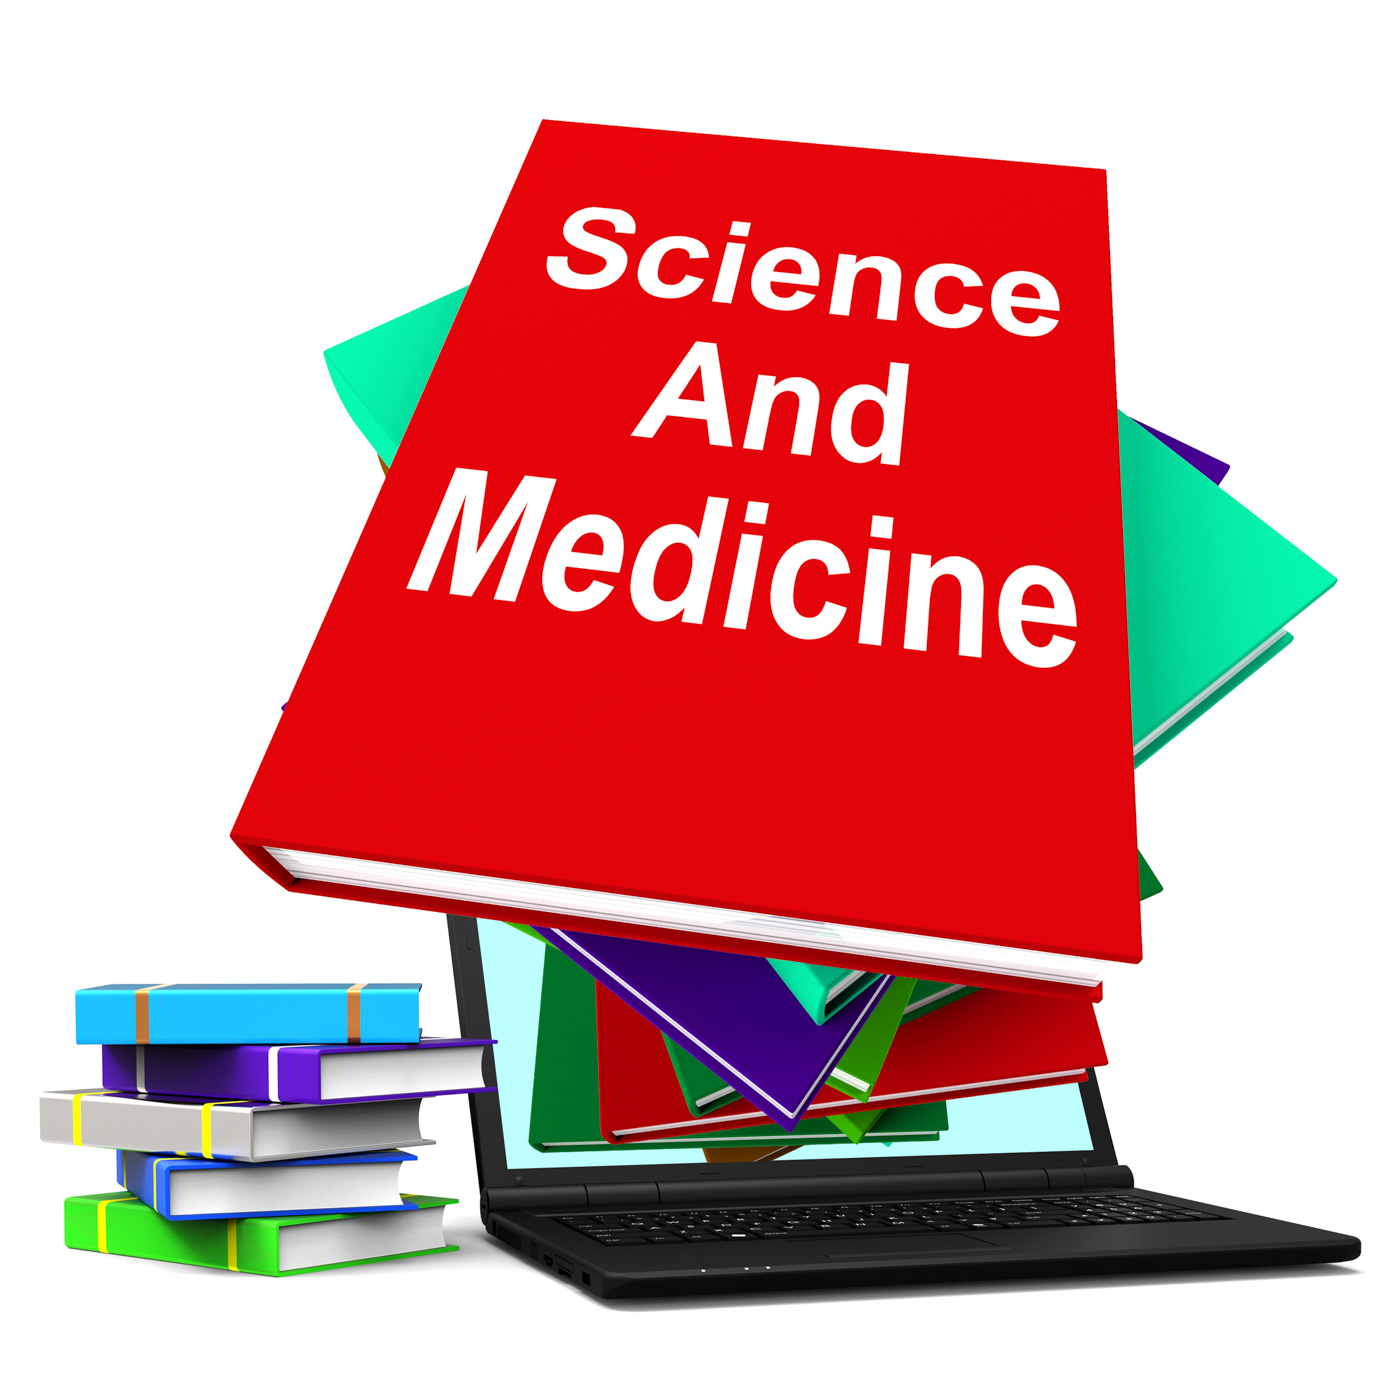 Science And Medicine Book Stack Laptop Shows Medical Research, Medicine, Studying, Study, Stack, HQ Photo